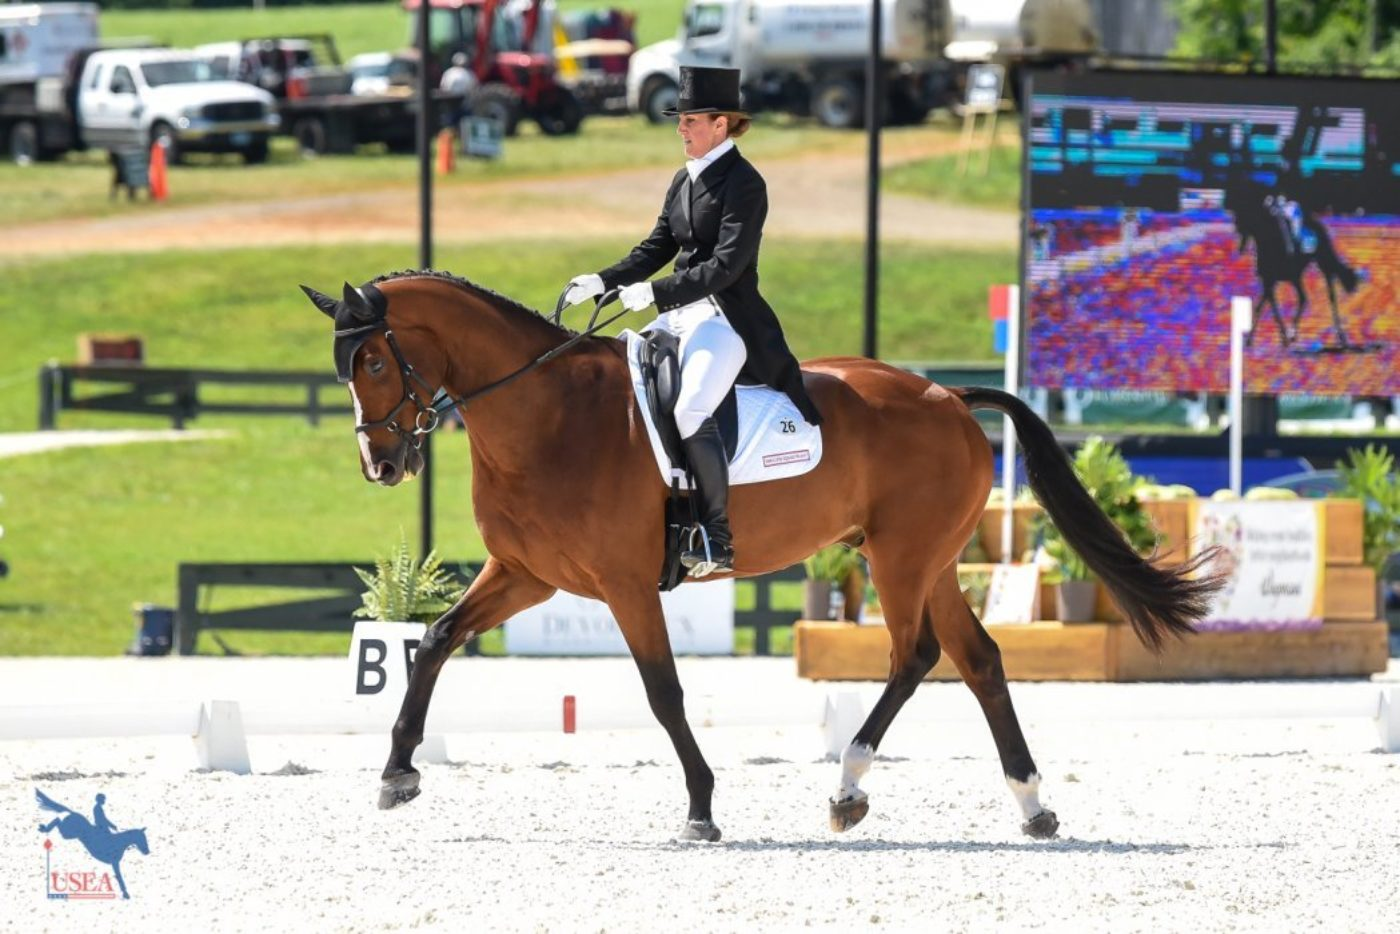 10th - Kristen Bond and Enough Already - 33.1